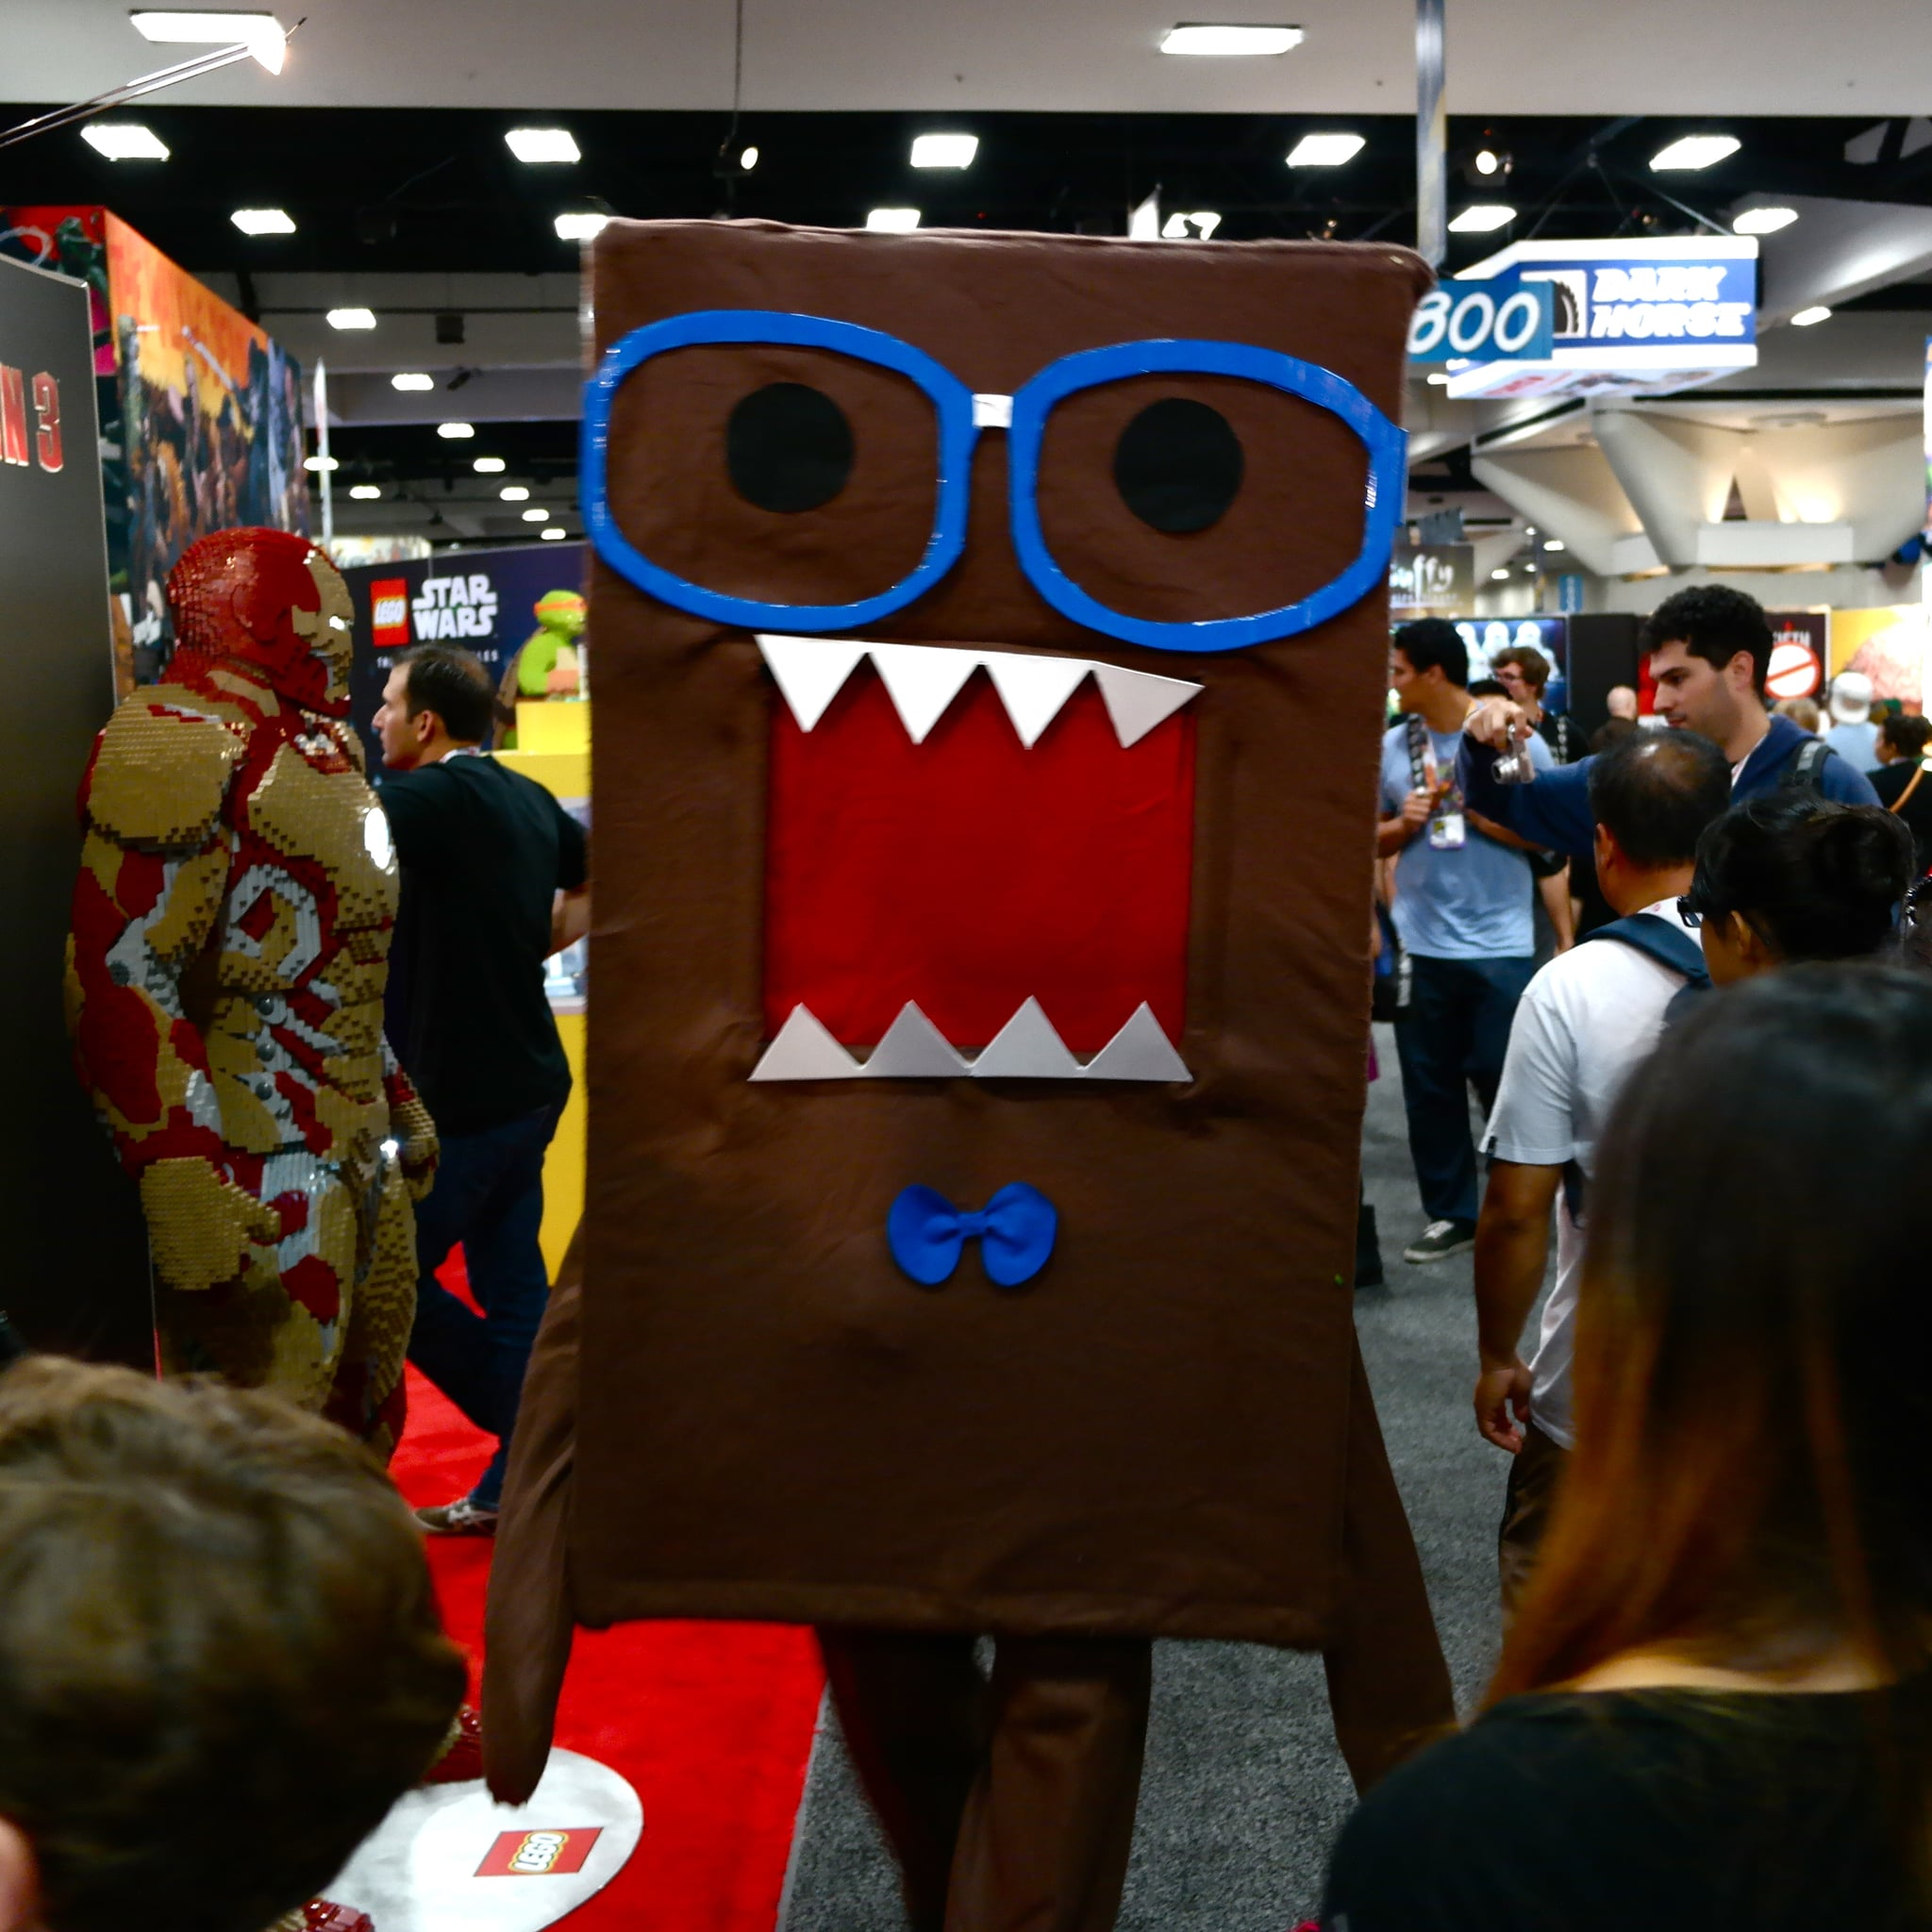 An eye-catching Domo cleared paths on the exhibition floor.